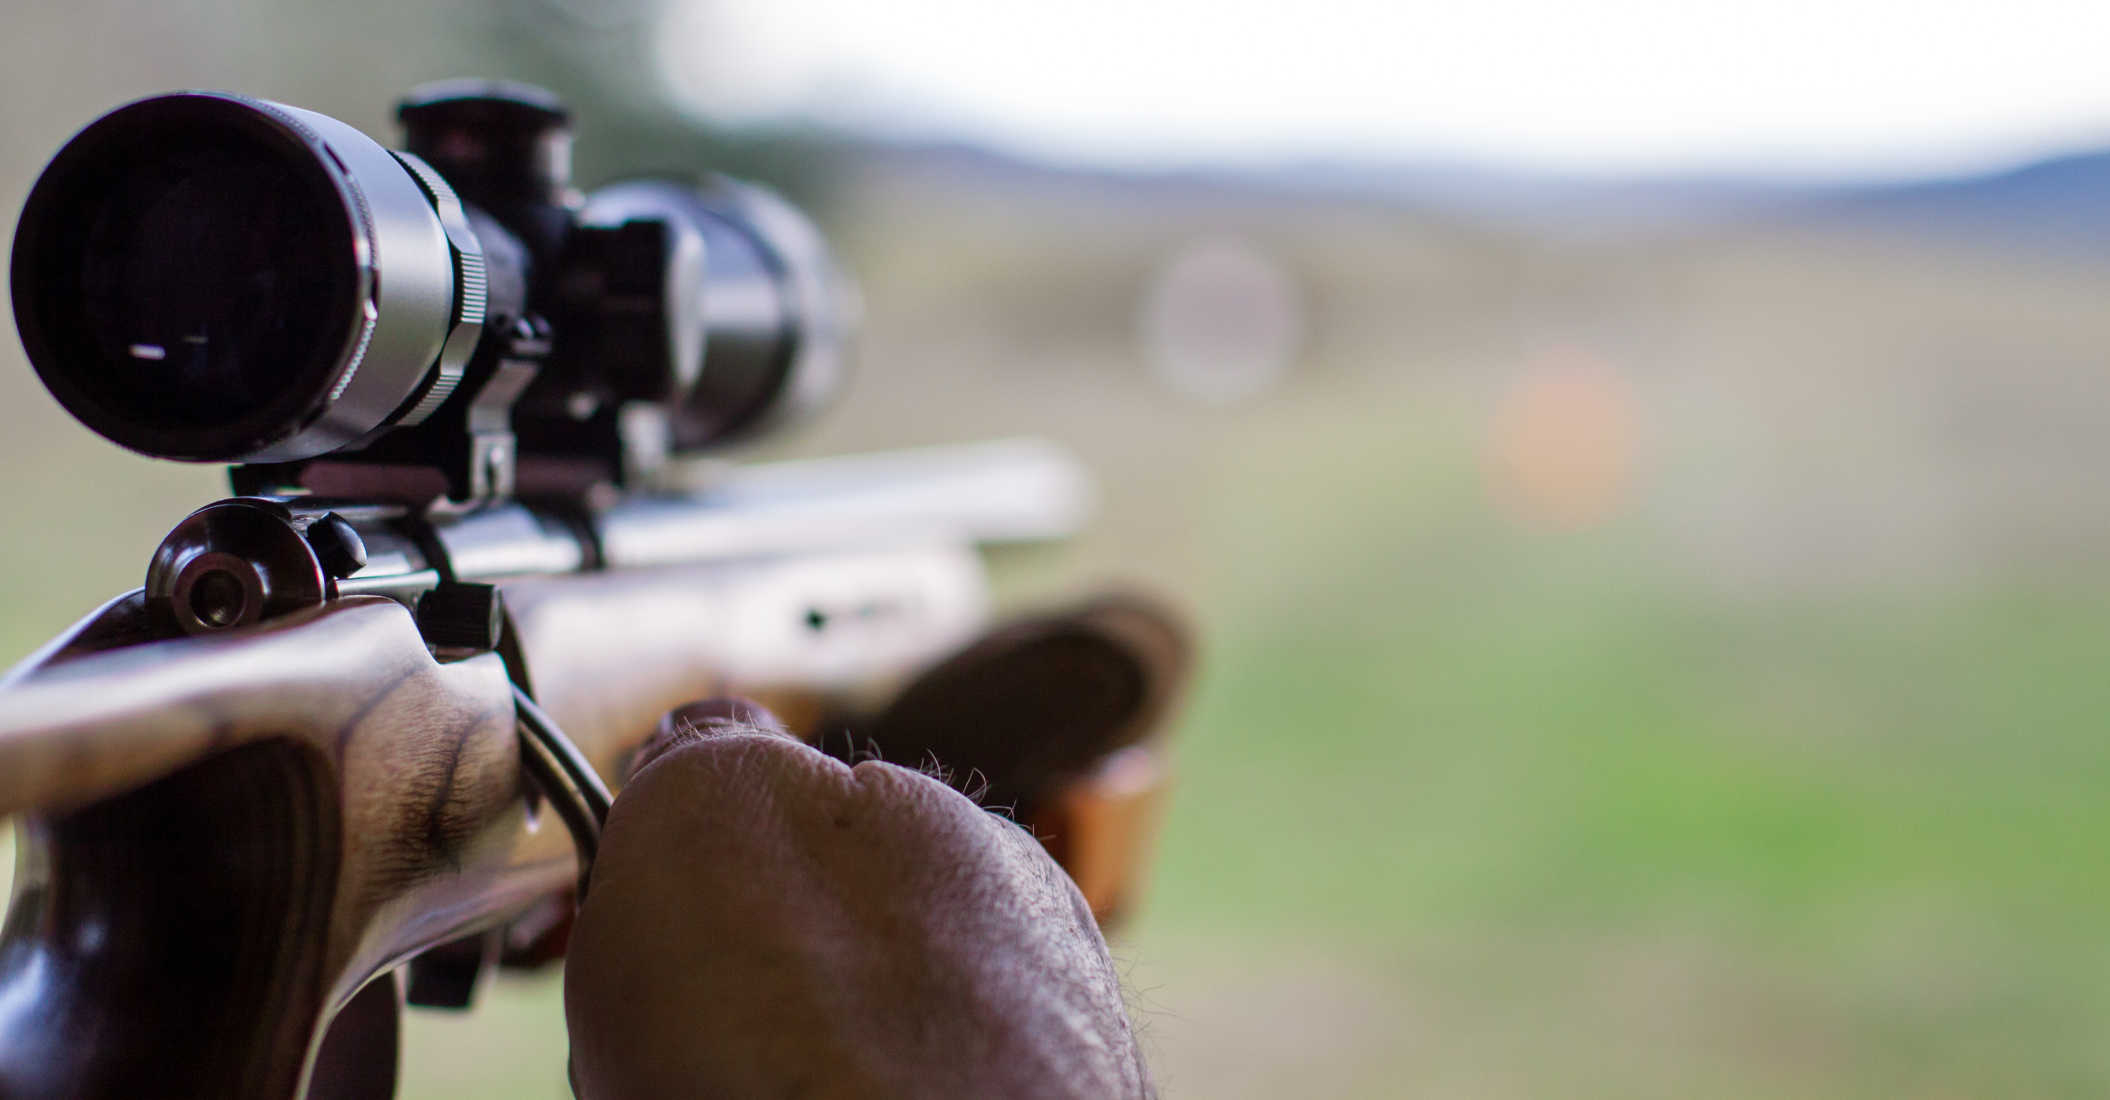 Man Fends-Off Armed Robbers with .22 Rifle